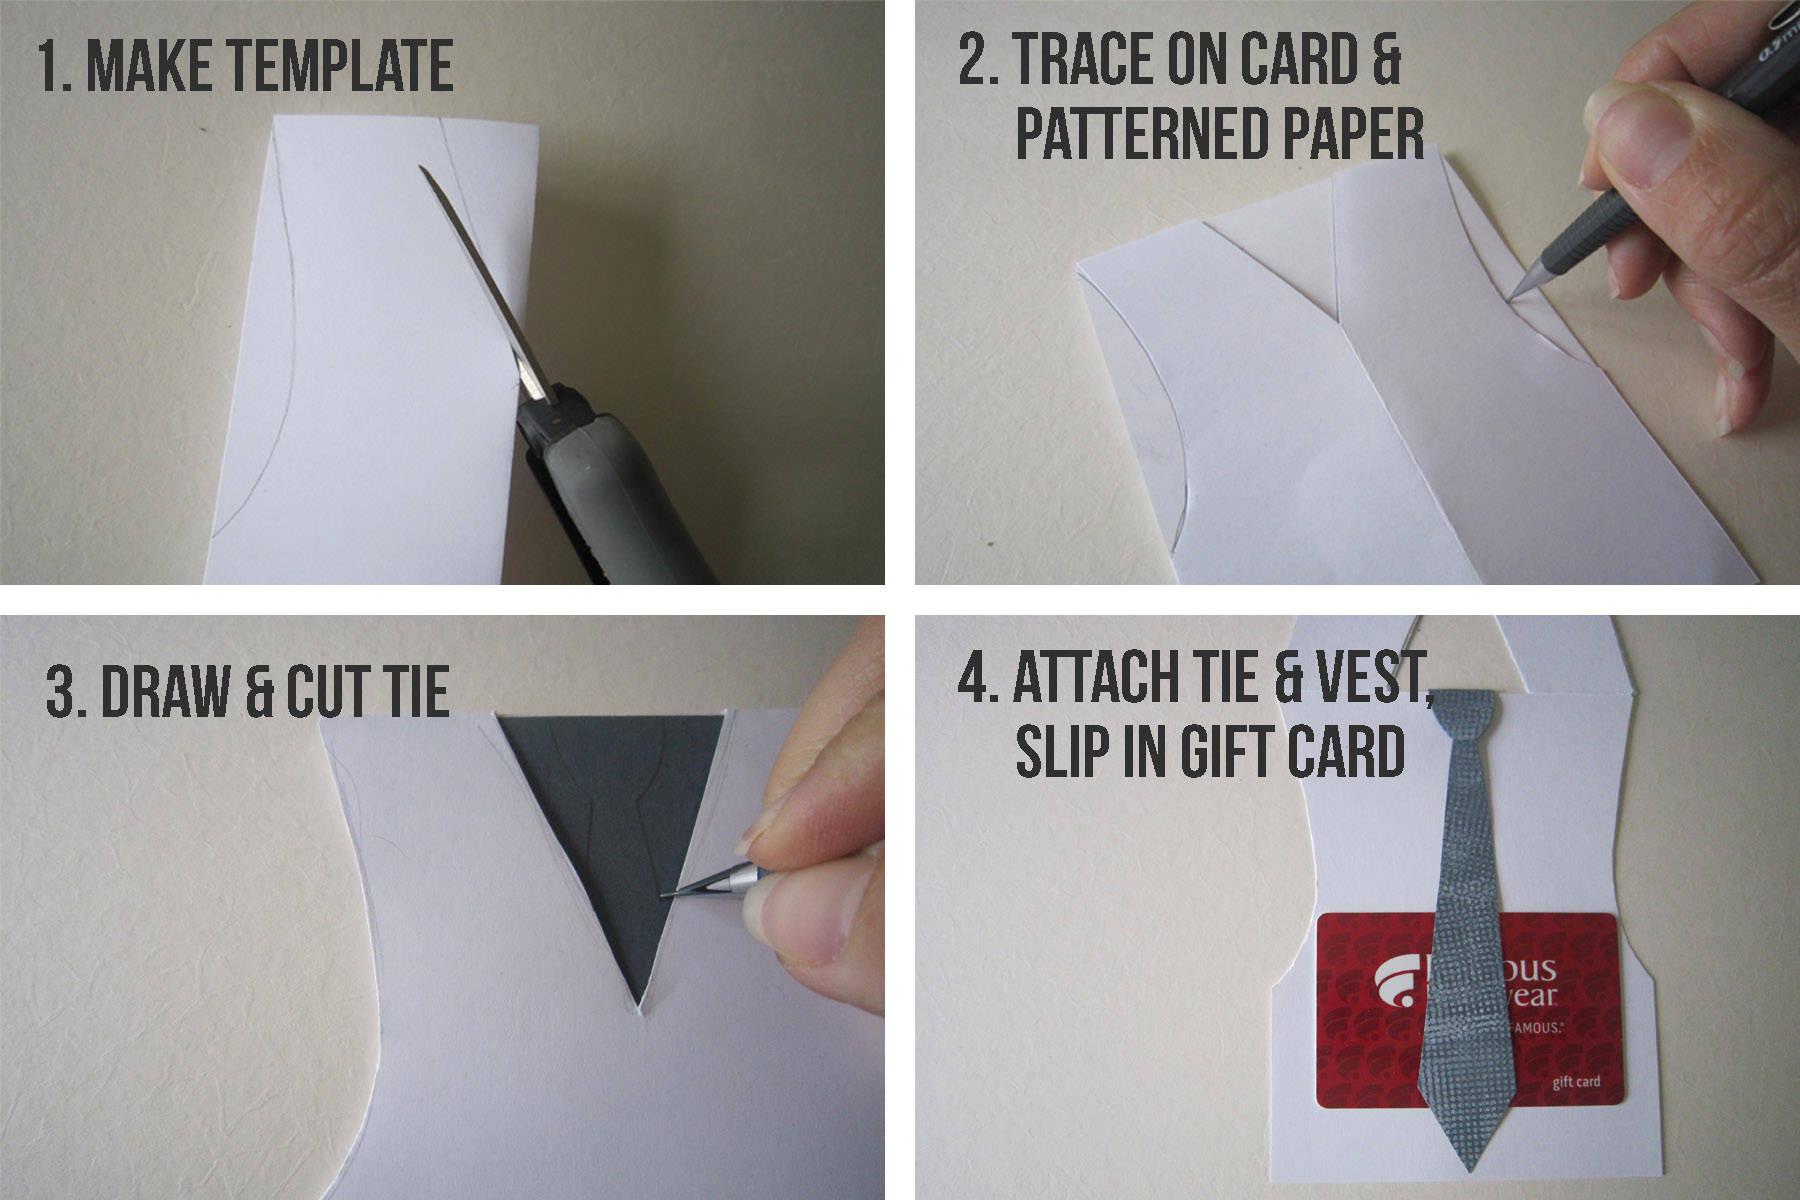 Origami Shirt Tutorial - Make an Origami Shirt and Tie | The ... | 1200x1800